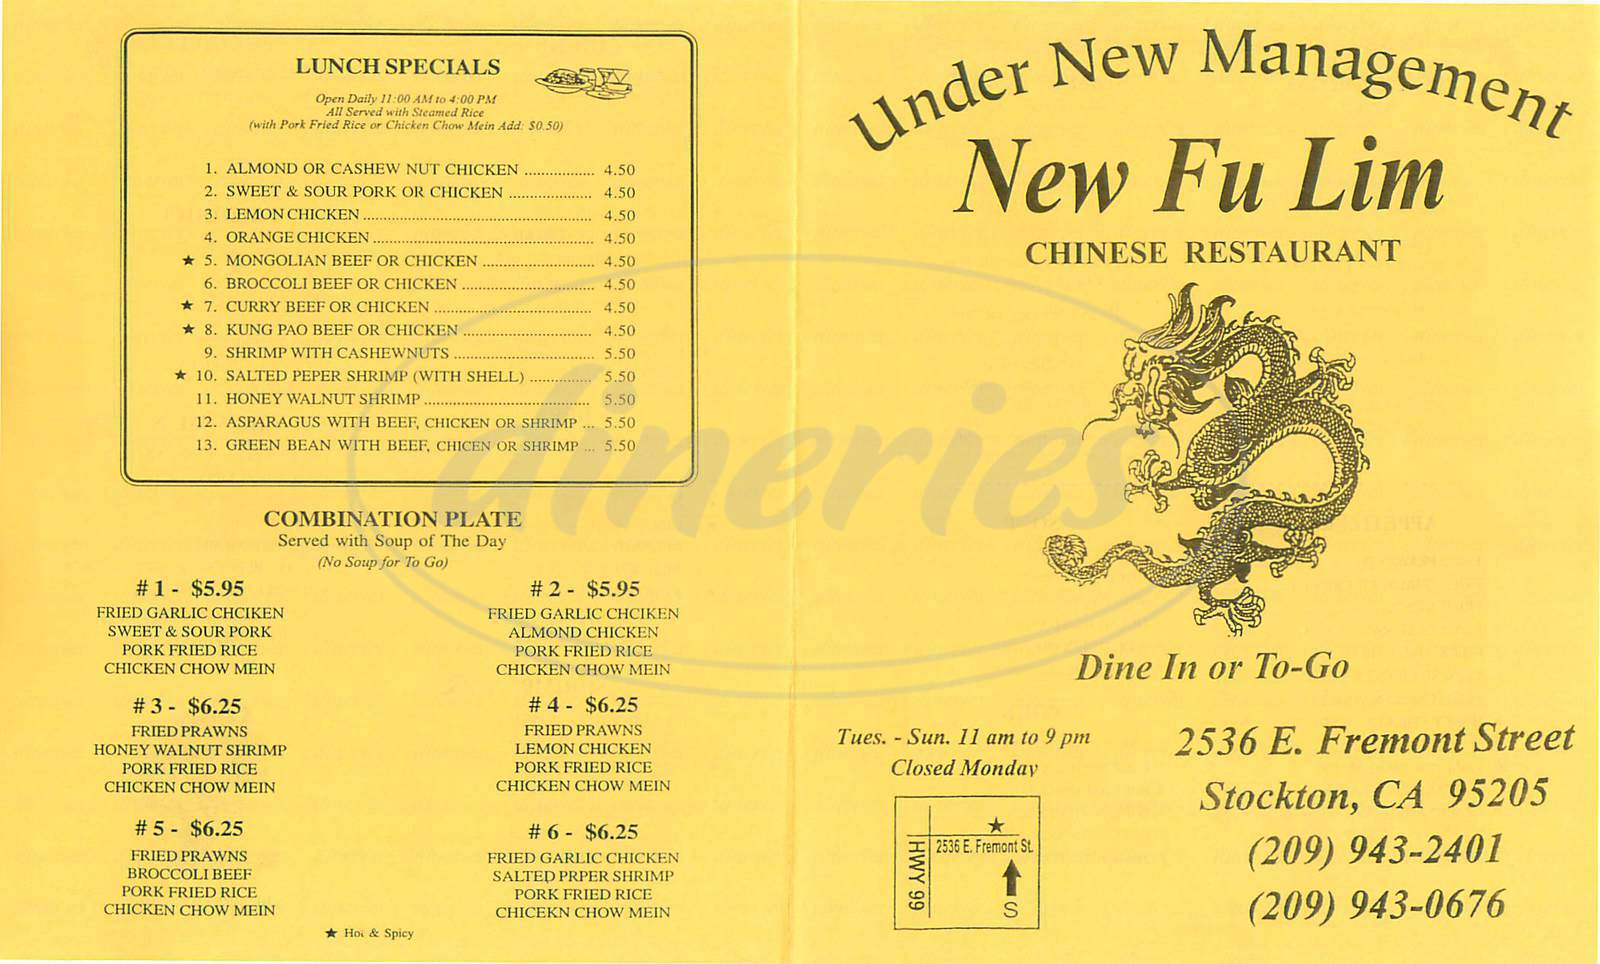 menu for New Fu Lim